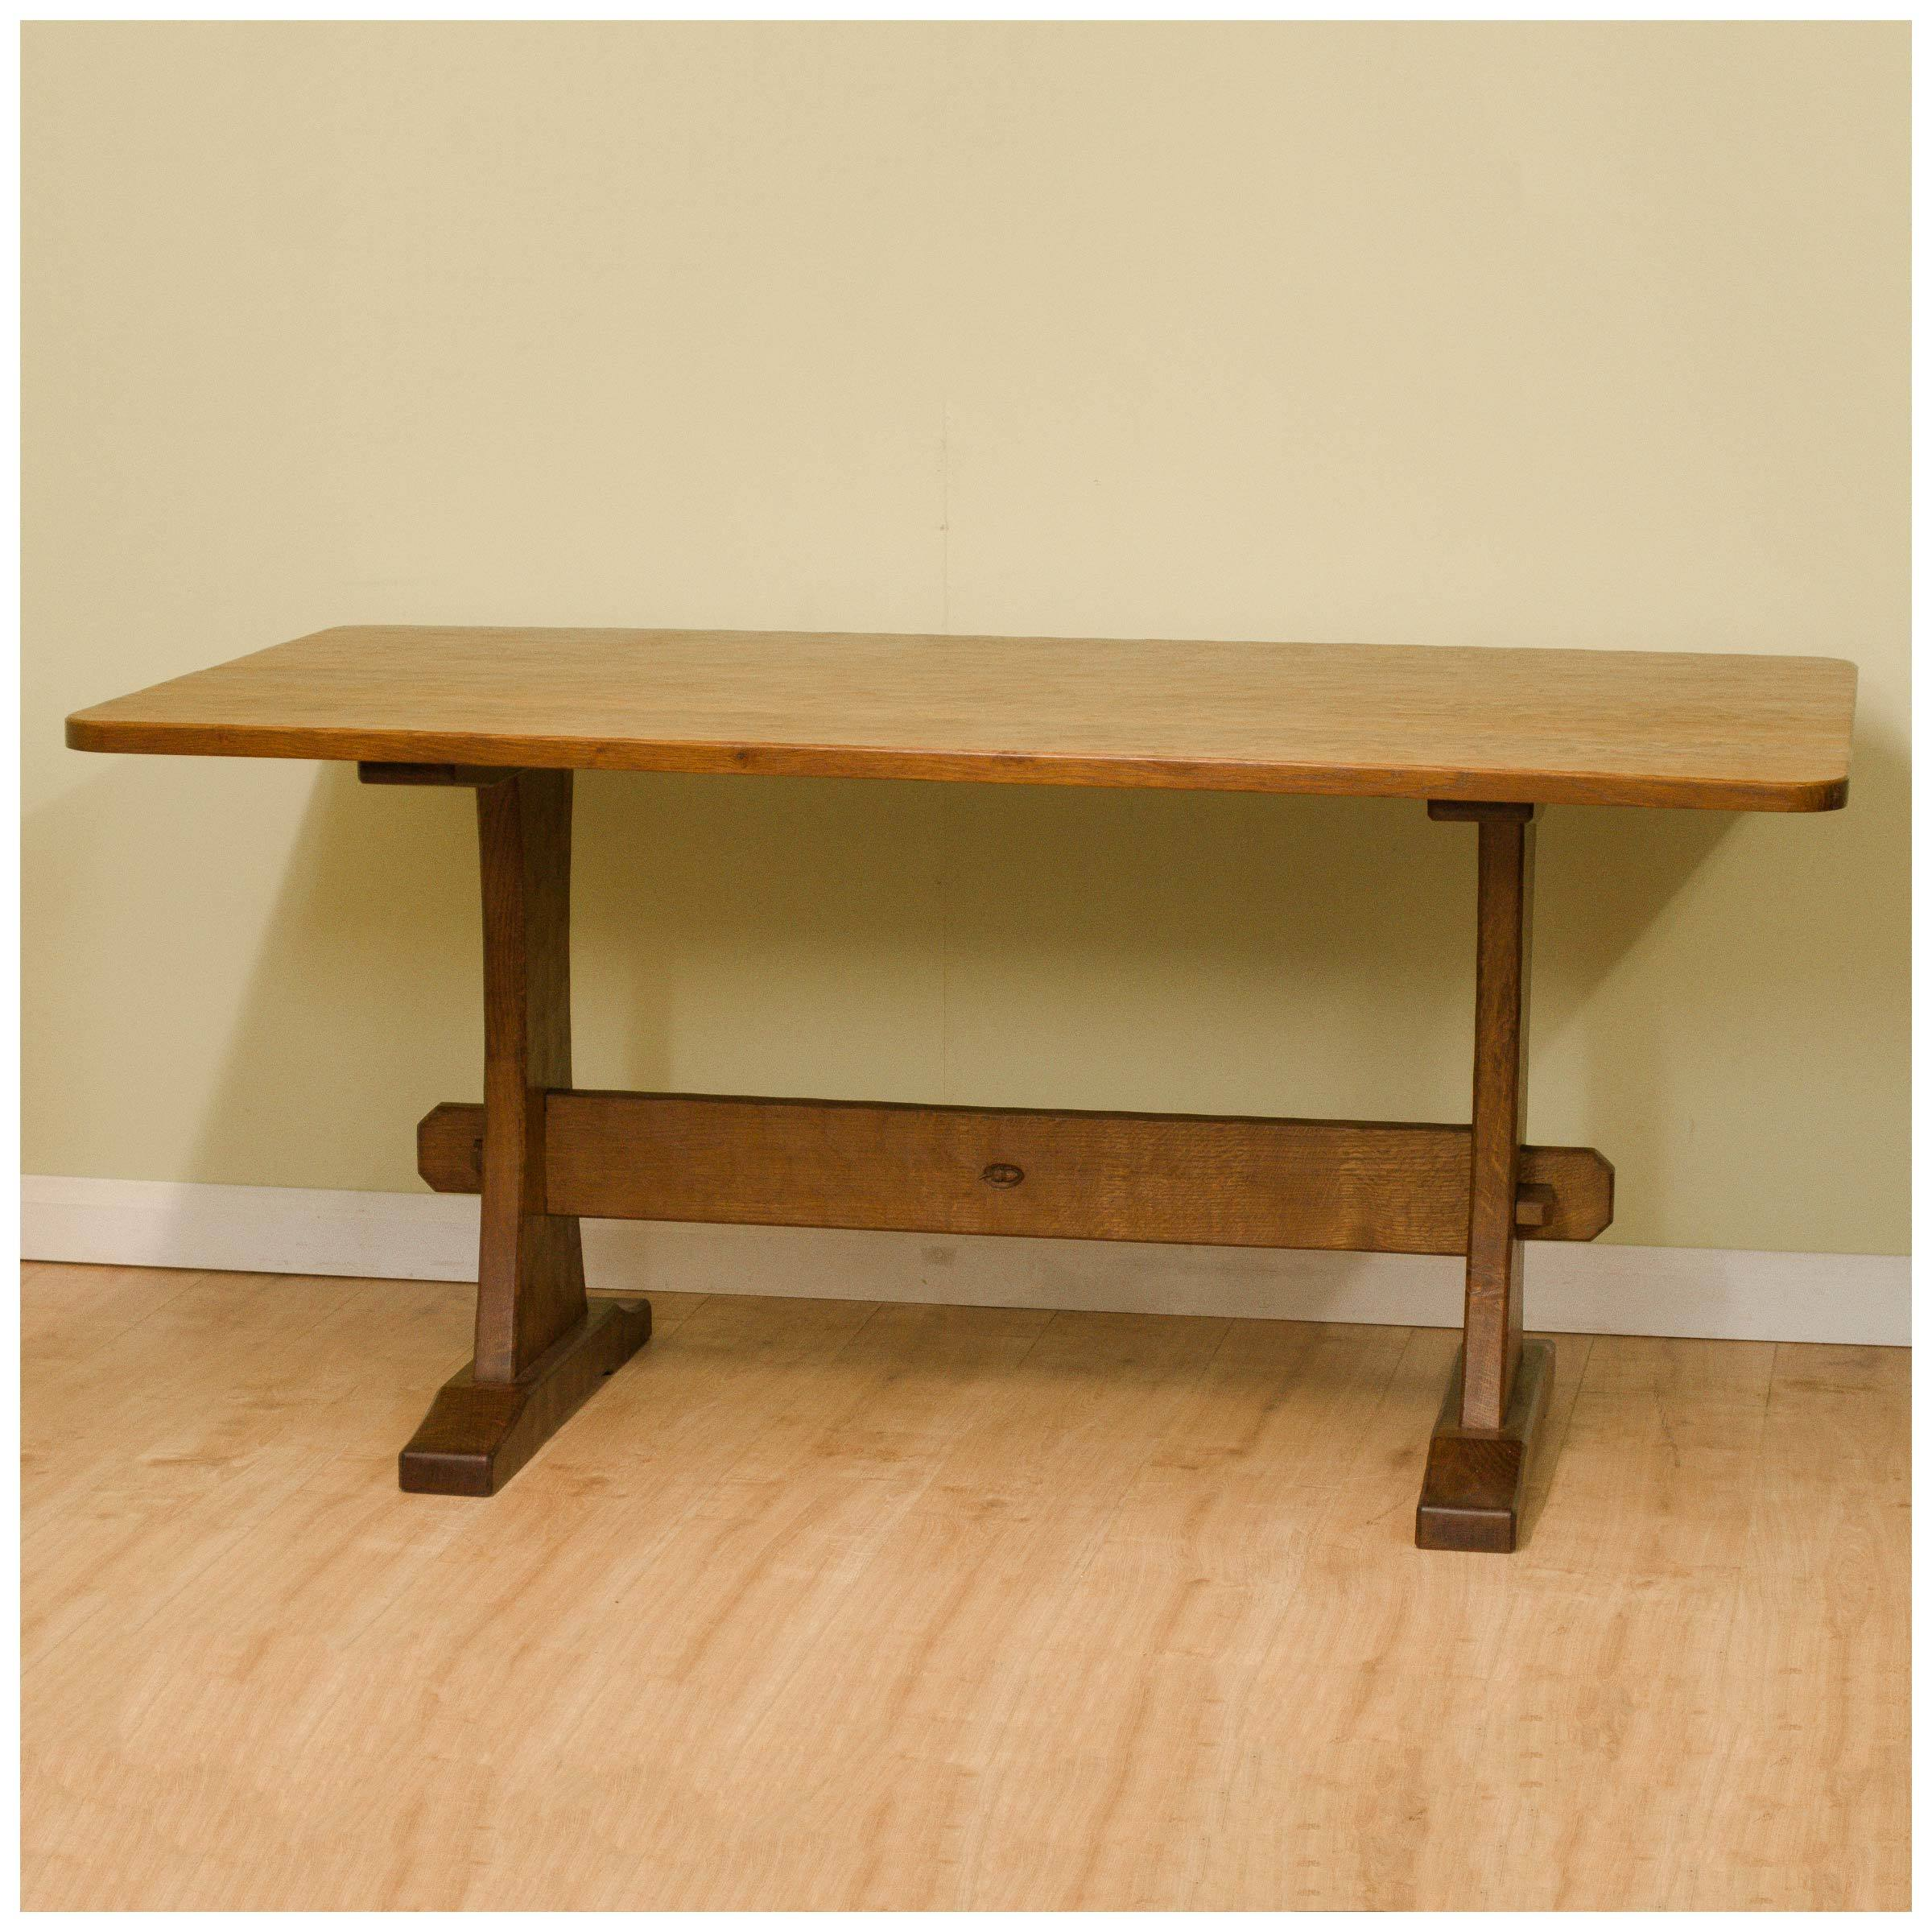 adzed-yorkshire-school-oak-rectangular-dining-table-by-alan-acornman-grainger-acorn-industries-b0020141a.jpg